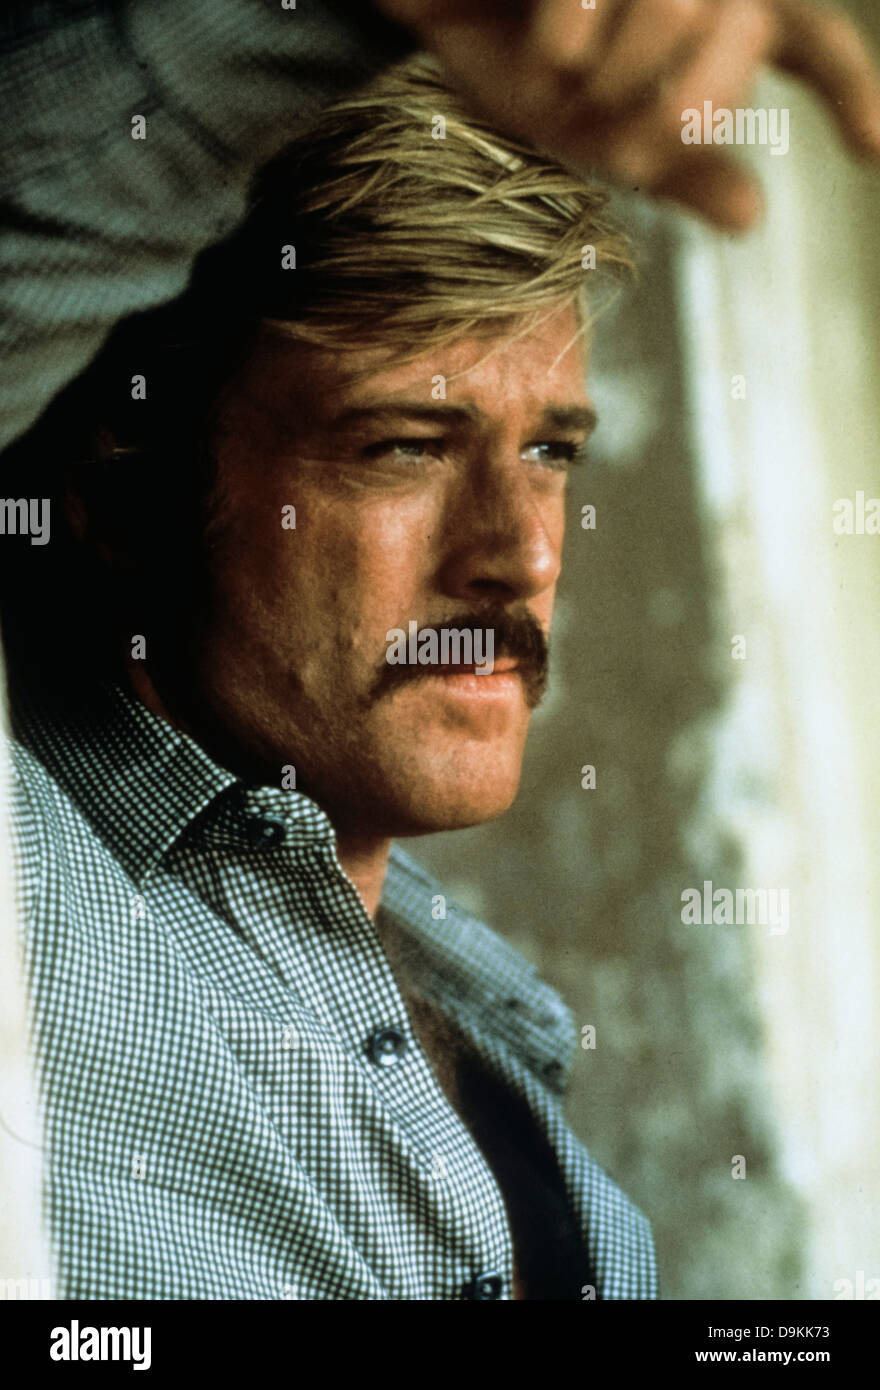 Robert Redford,Butch Cassidy 1969 - Stock Image